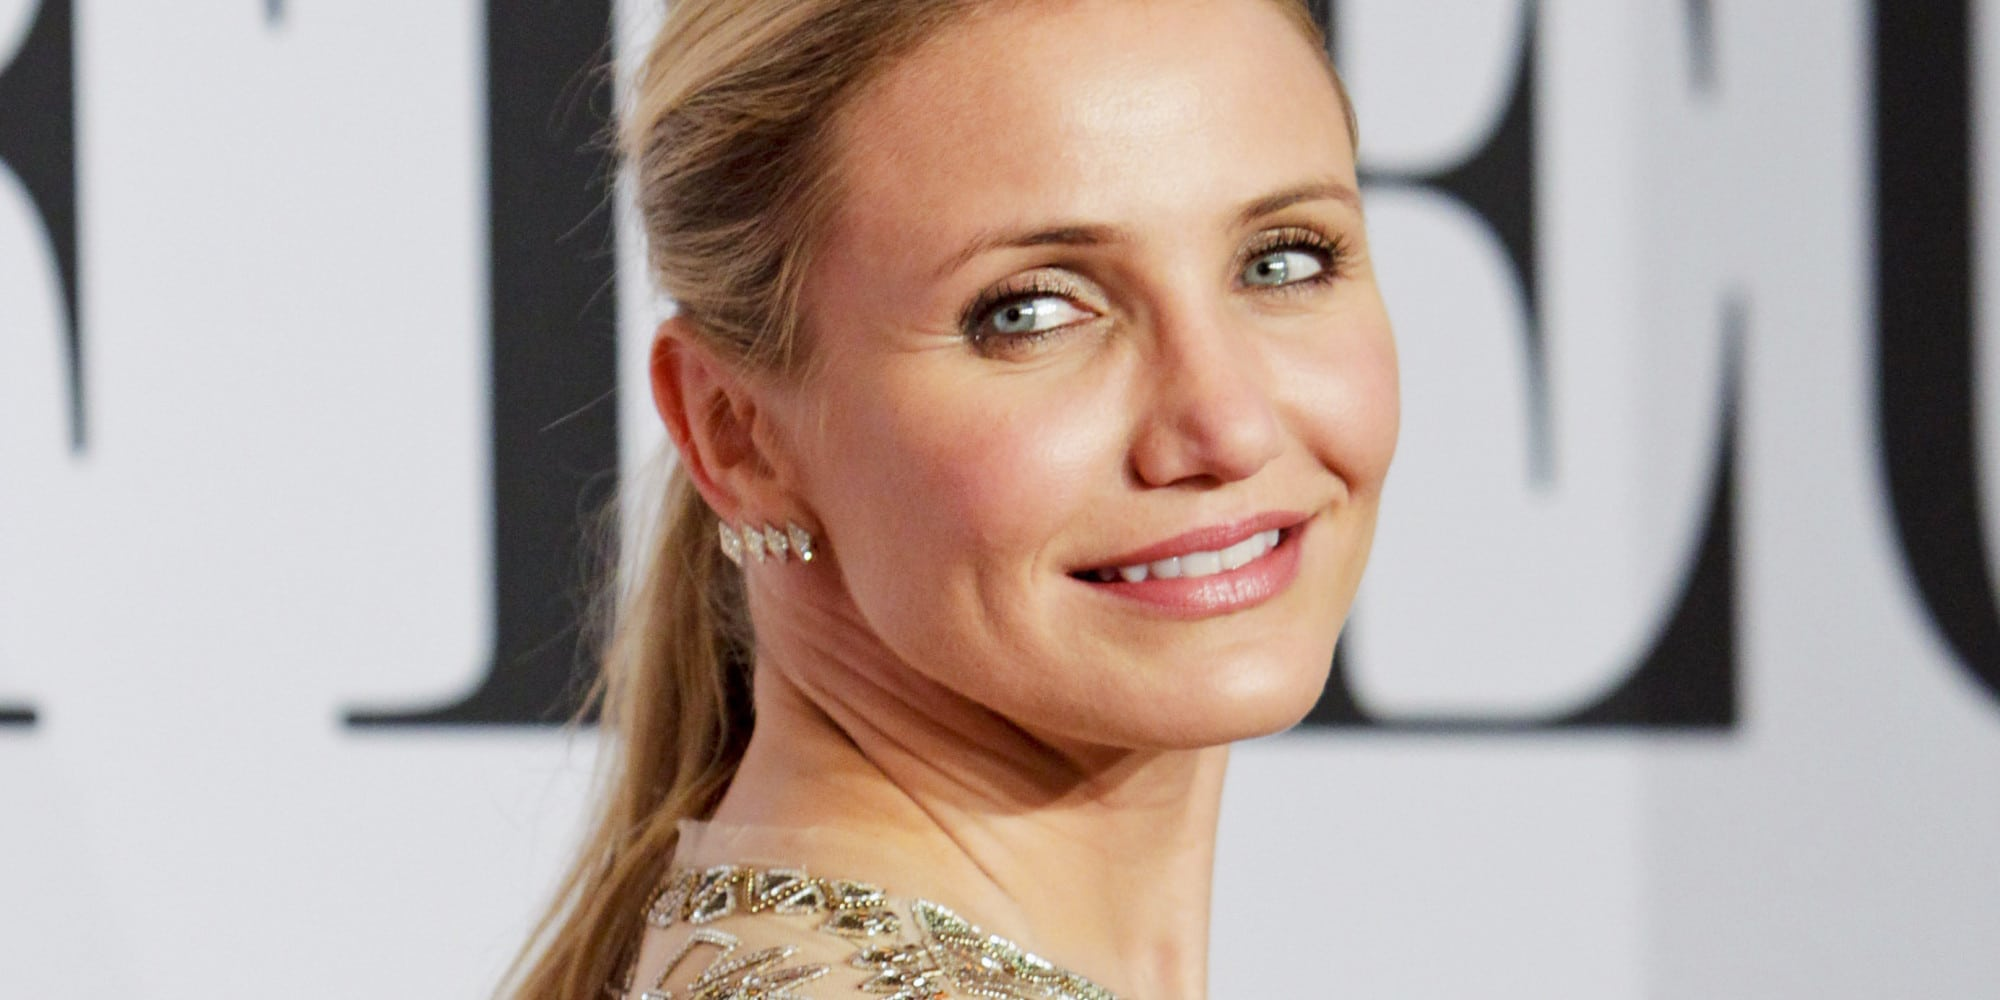 Cameron Diaz Net Worth, Salary, Income & Assets in 2018Cameron Diaz Net Worth 2018